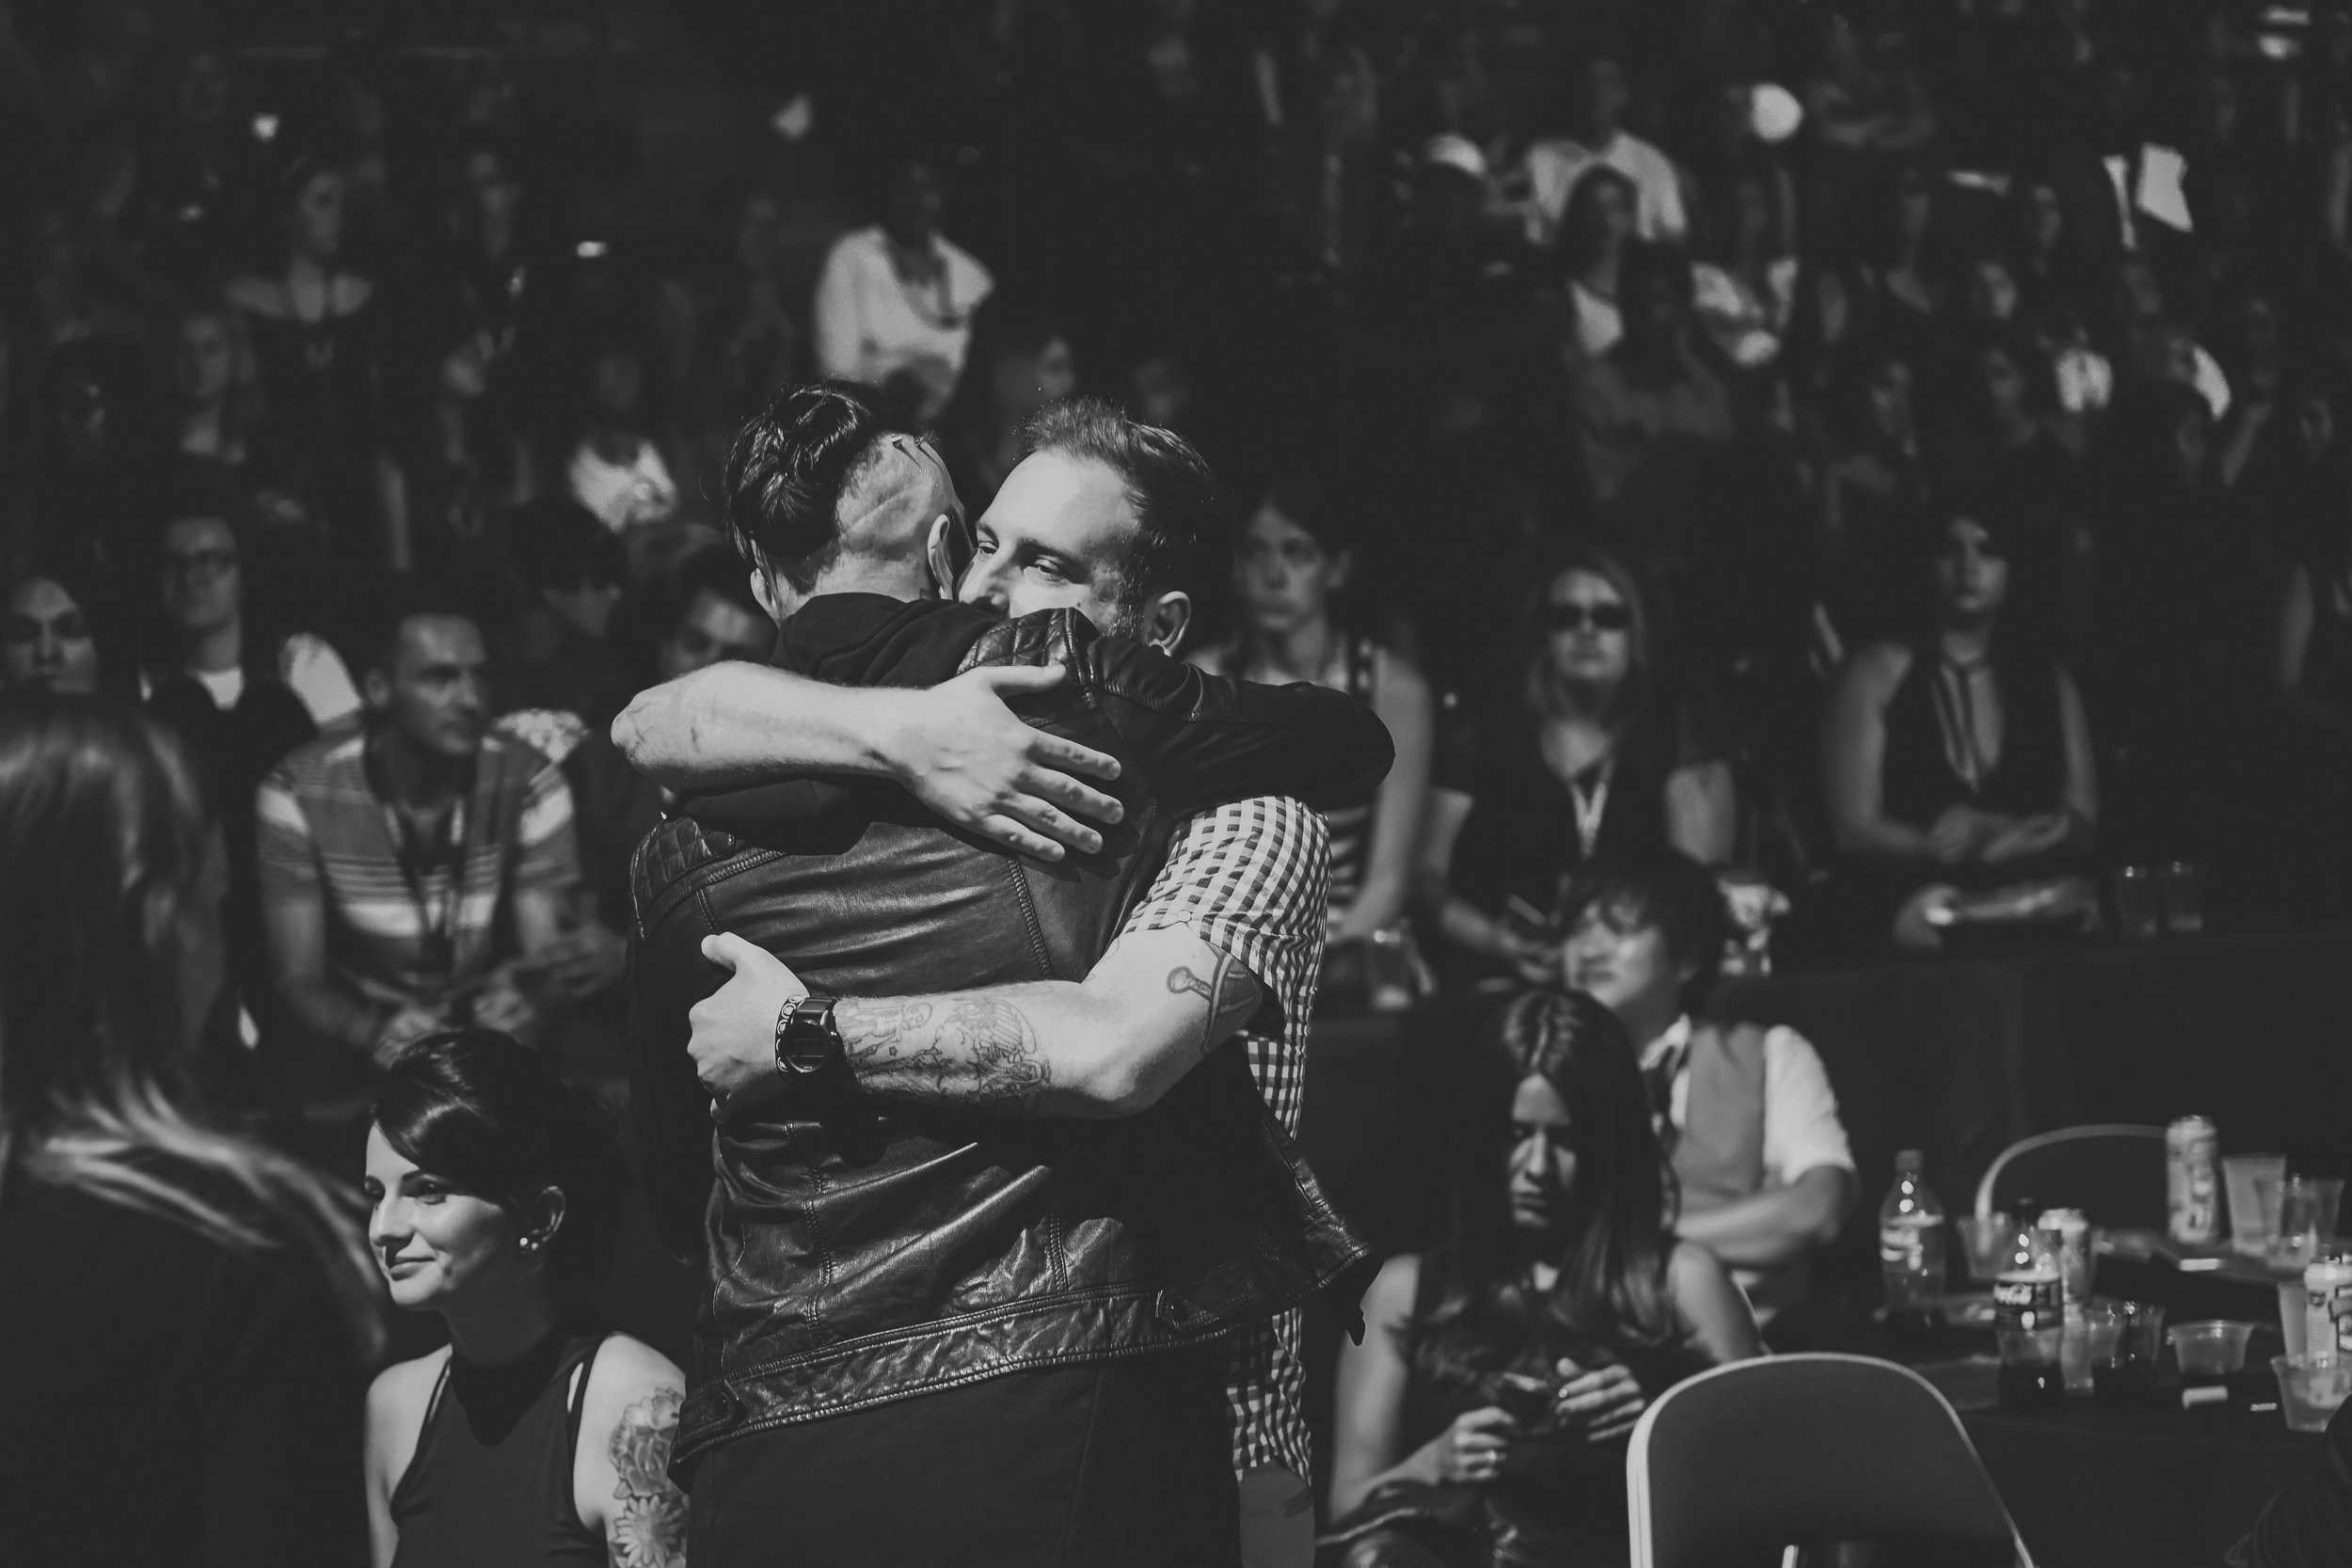 I wanted to end the APMAS segment with this photo. This is Jonathan Vigil of The Ghost Inside and Chris Cerulli of Motionless In White. If you don't already know, last year The Ghost Inside were involved in a fatal bus accident that left all of them in the hospital, and most unable to walk. This was their first public appearance since that accident, and there were a lot of emotions that night because of it. This photo is full of raw emotion, and they stayed embraced for a solid 45 seconds. This music scene is full of different types of people. Different beliefs, values, outlooks, but everyone came together in this bands time of need, and humility was shown, by everyone. This made the night so much more beautiful than it already was.